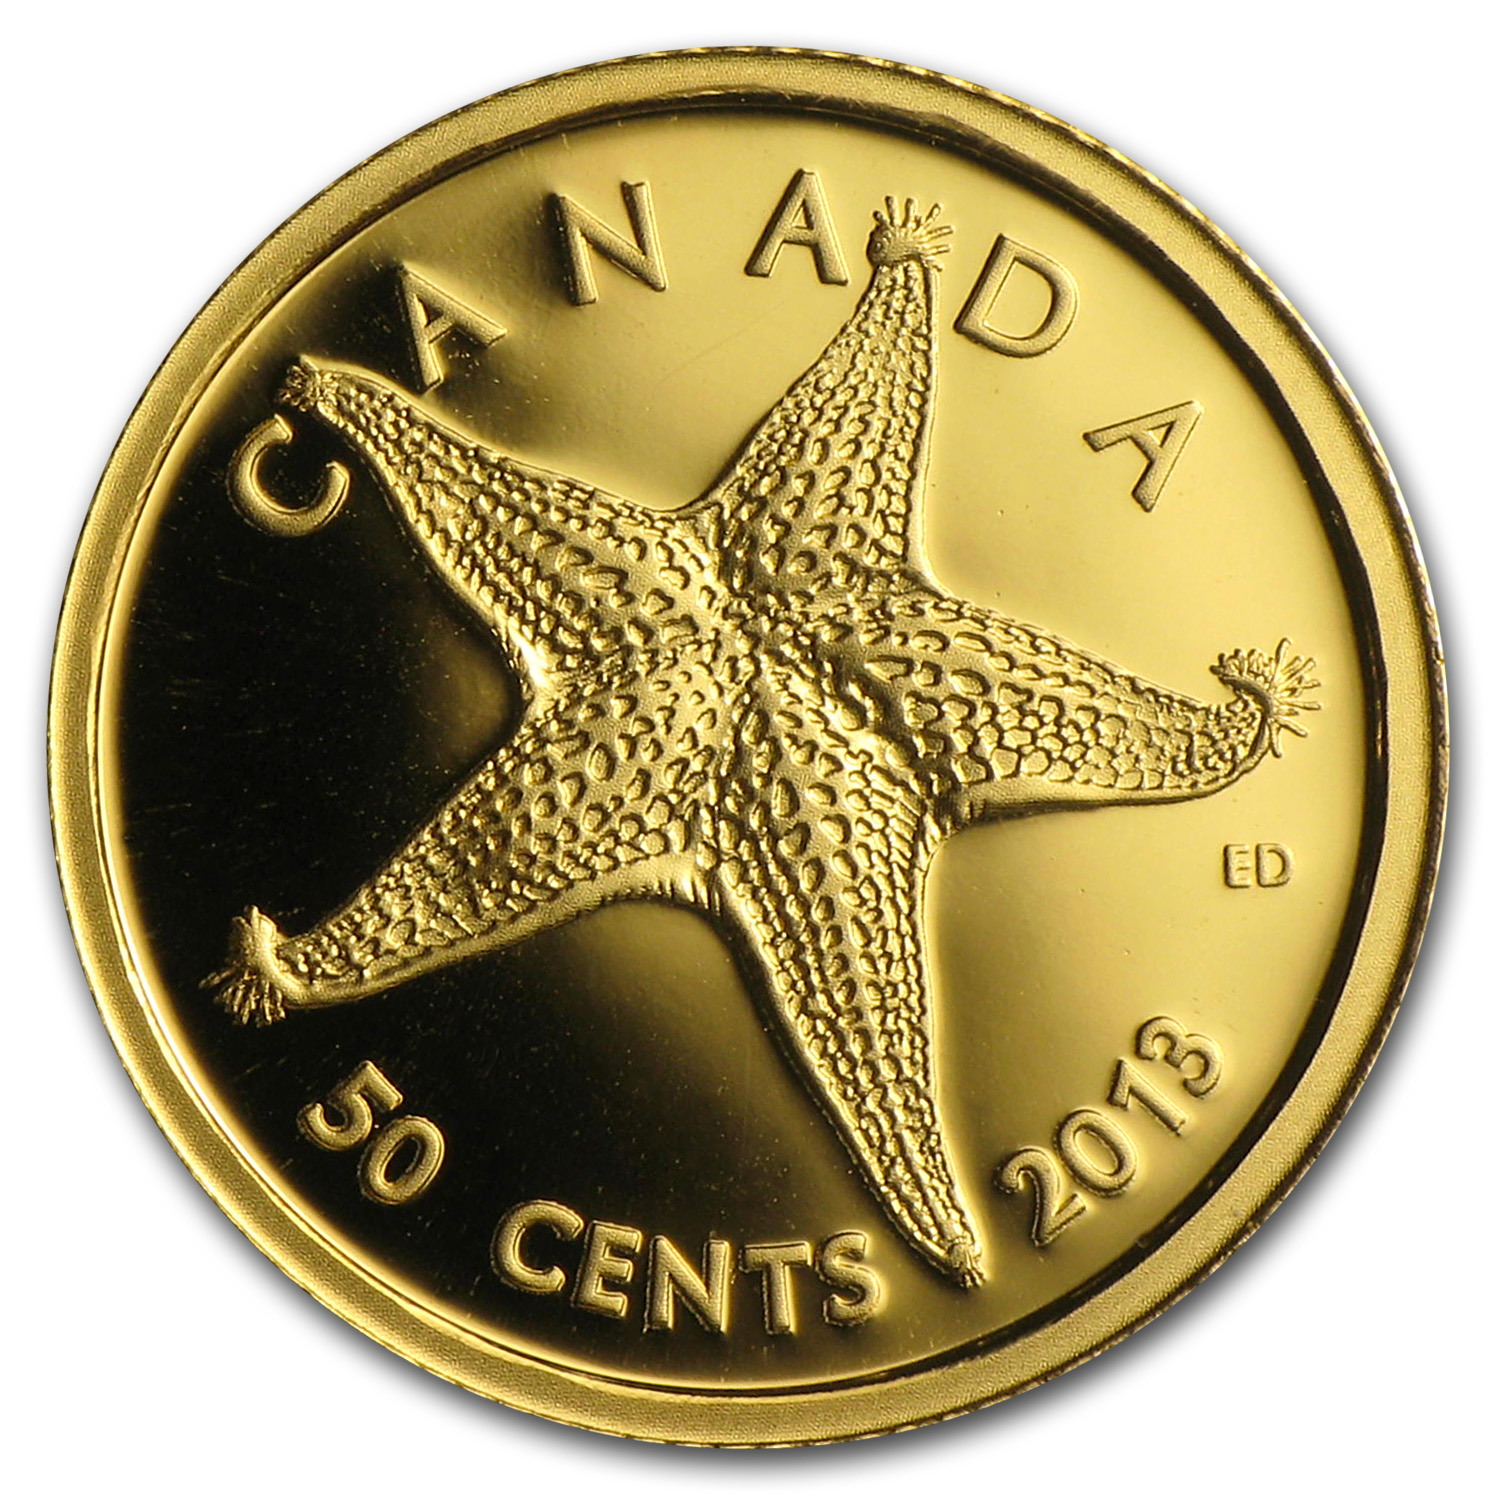 2013 1/25 oz Gold Canadian $0.50 Sea Creatures Starfish Proof